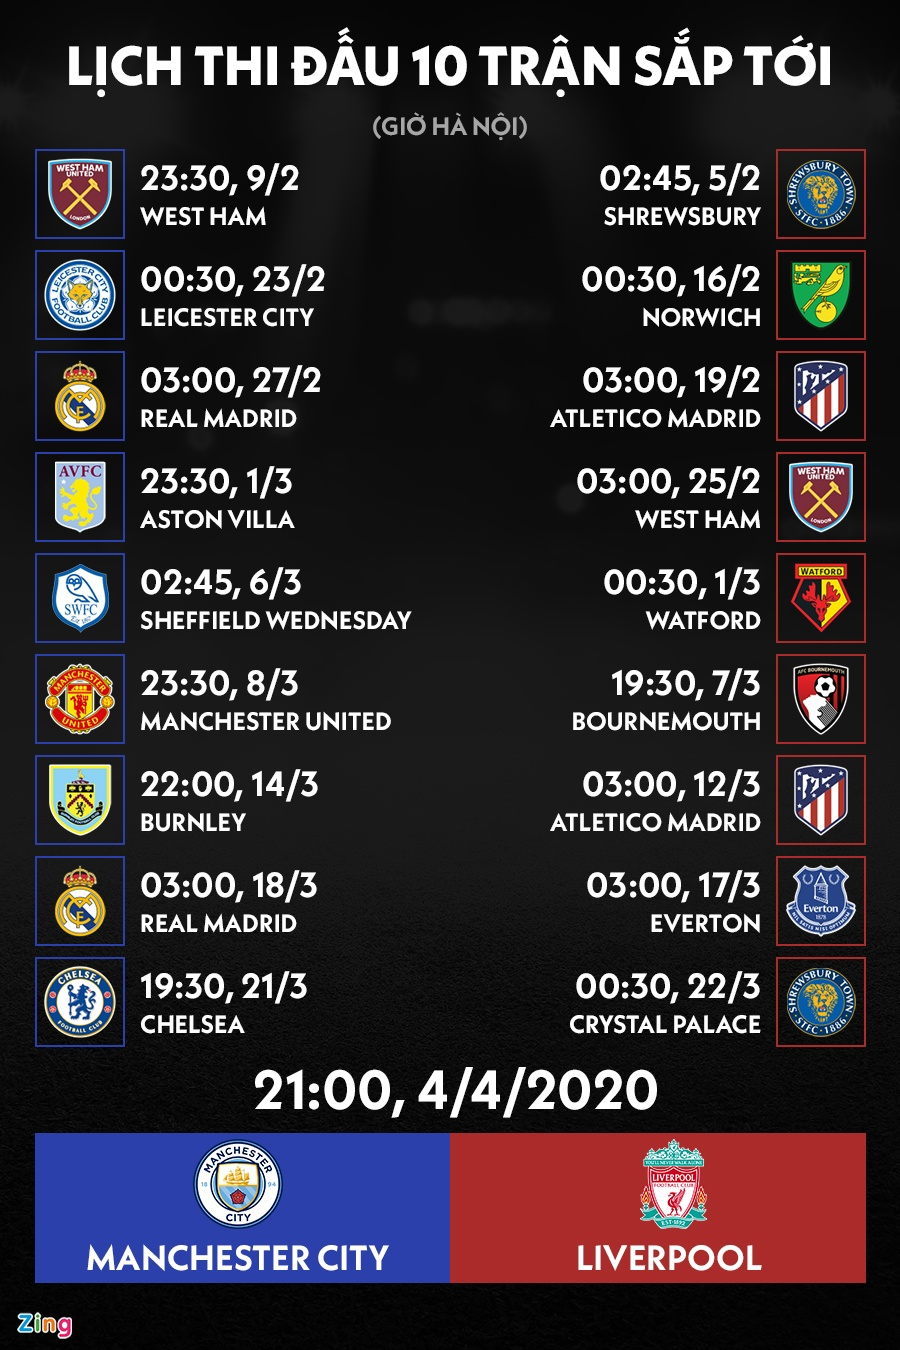 Liverpool huy diet cuoc dua vo dich Premier League nhu the nao hinh anh 2 schedule_zing.jpg